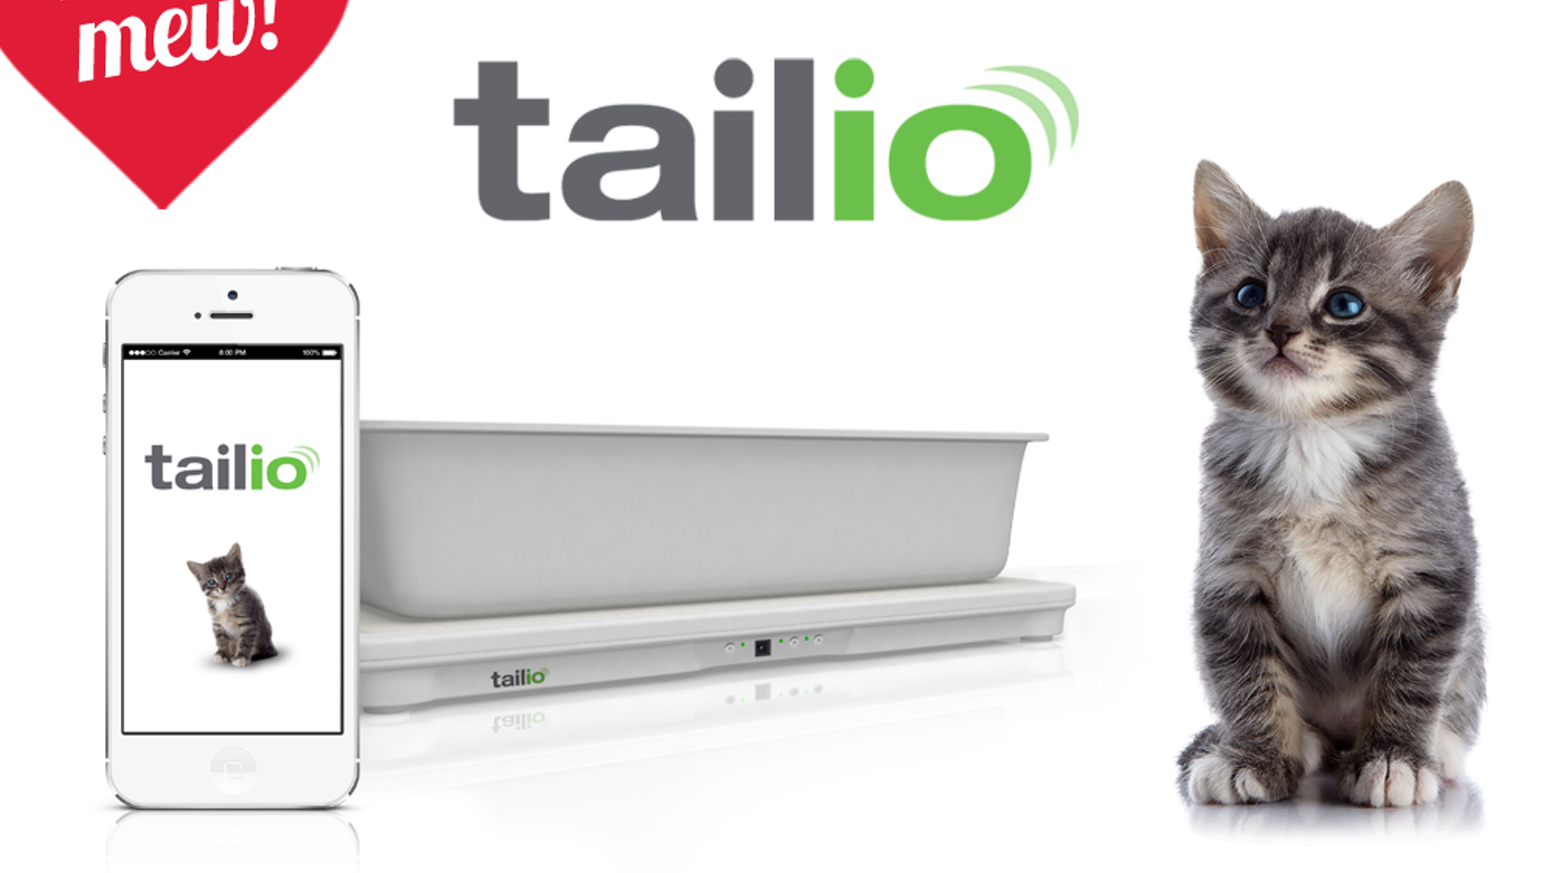 Tailio turns your cat's litter box into a smart monitor. Device rests under box, detects signs of trouble, mobile app alerts & tools